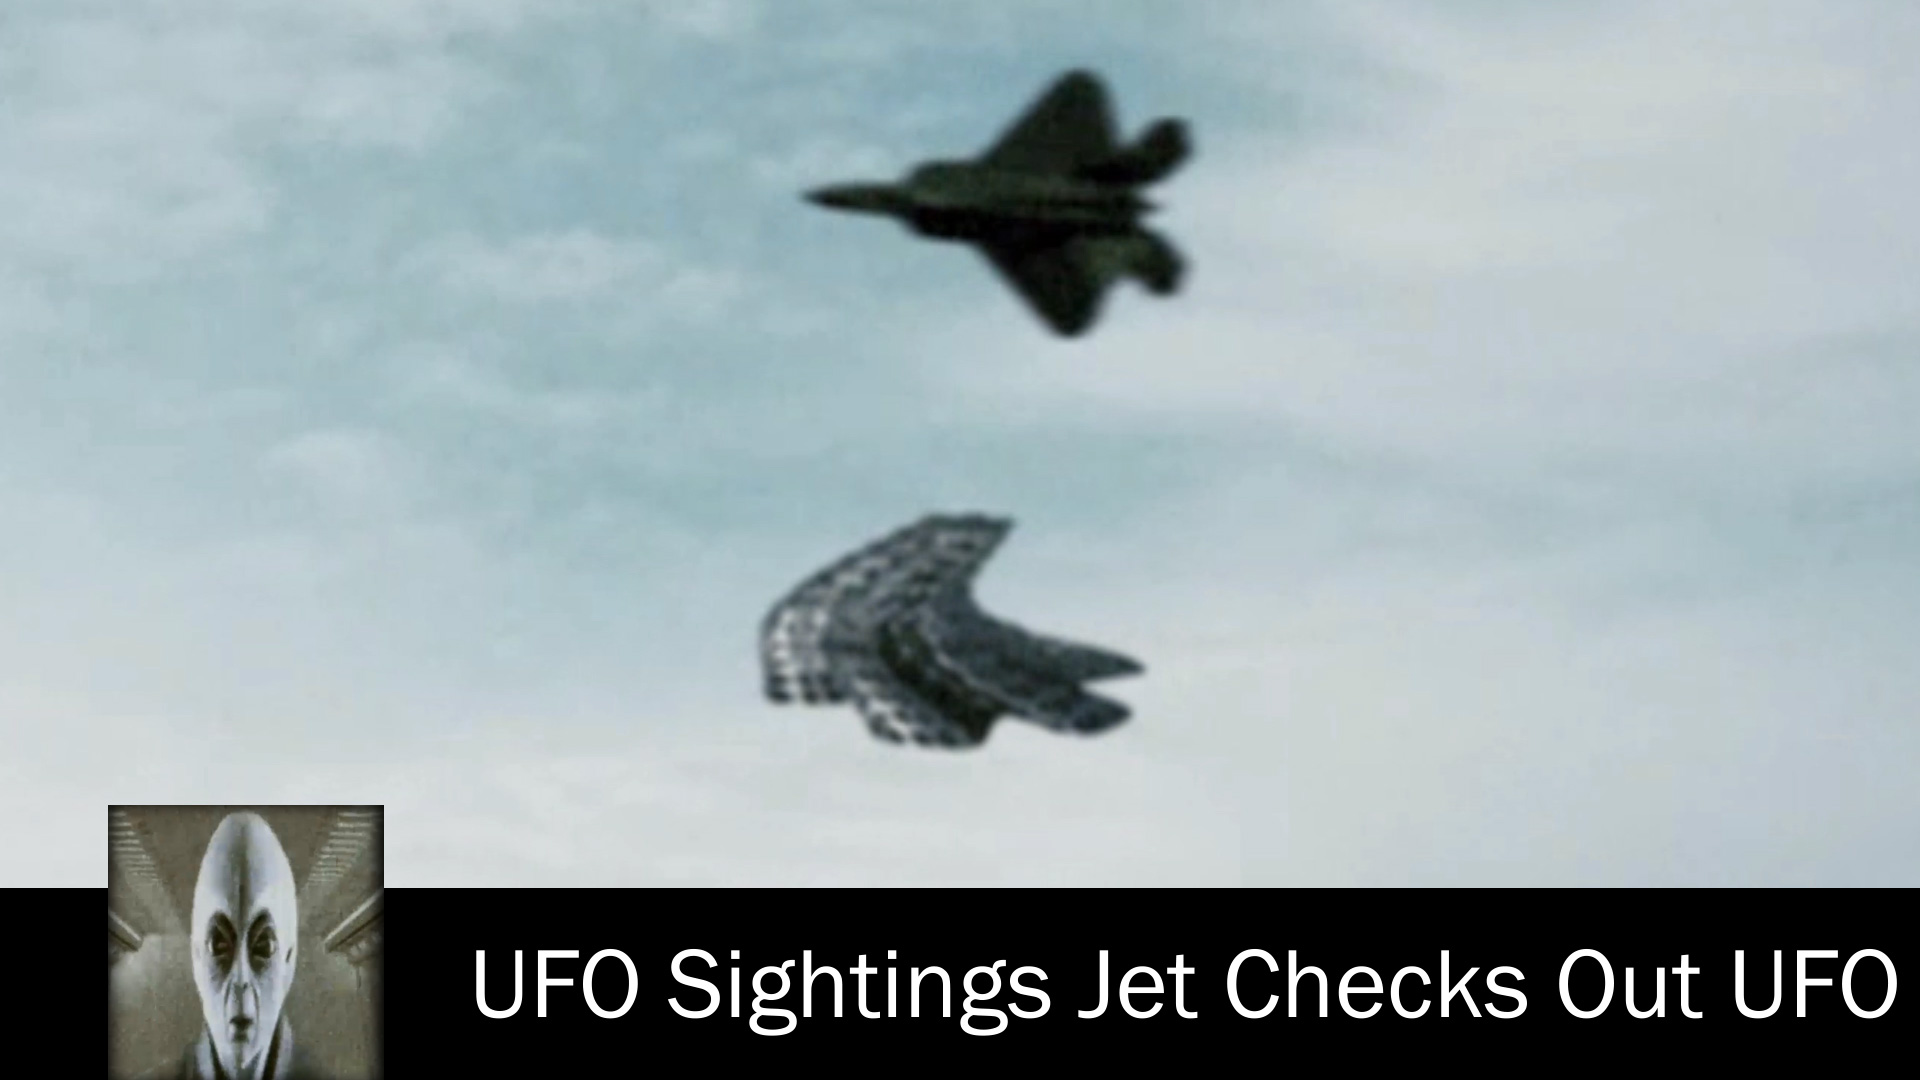 UFO Sightings Jet Checks Out UFO June 30th 2017